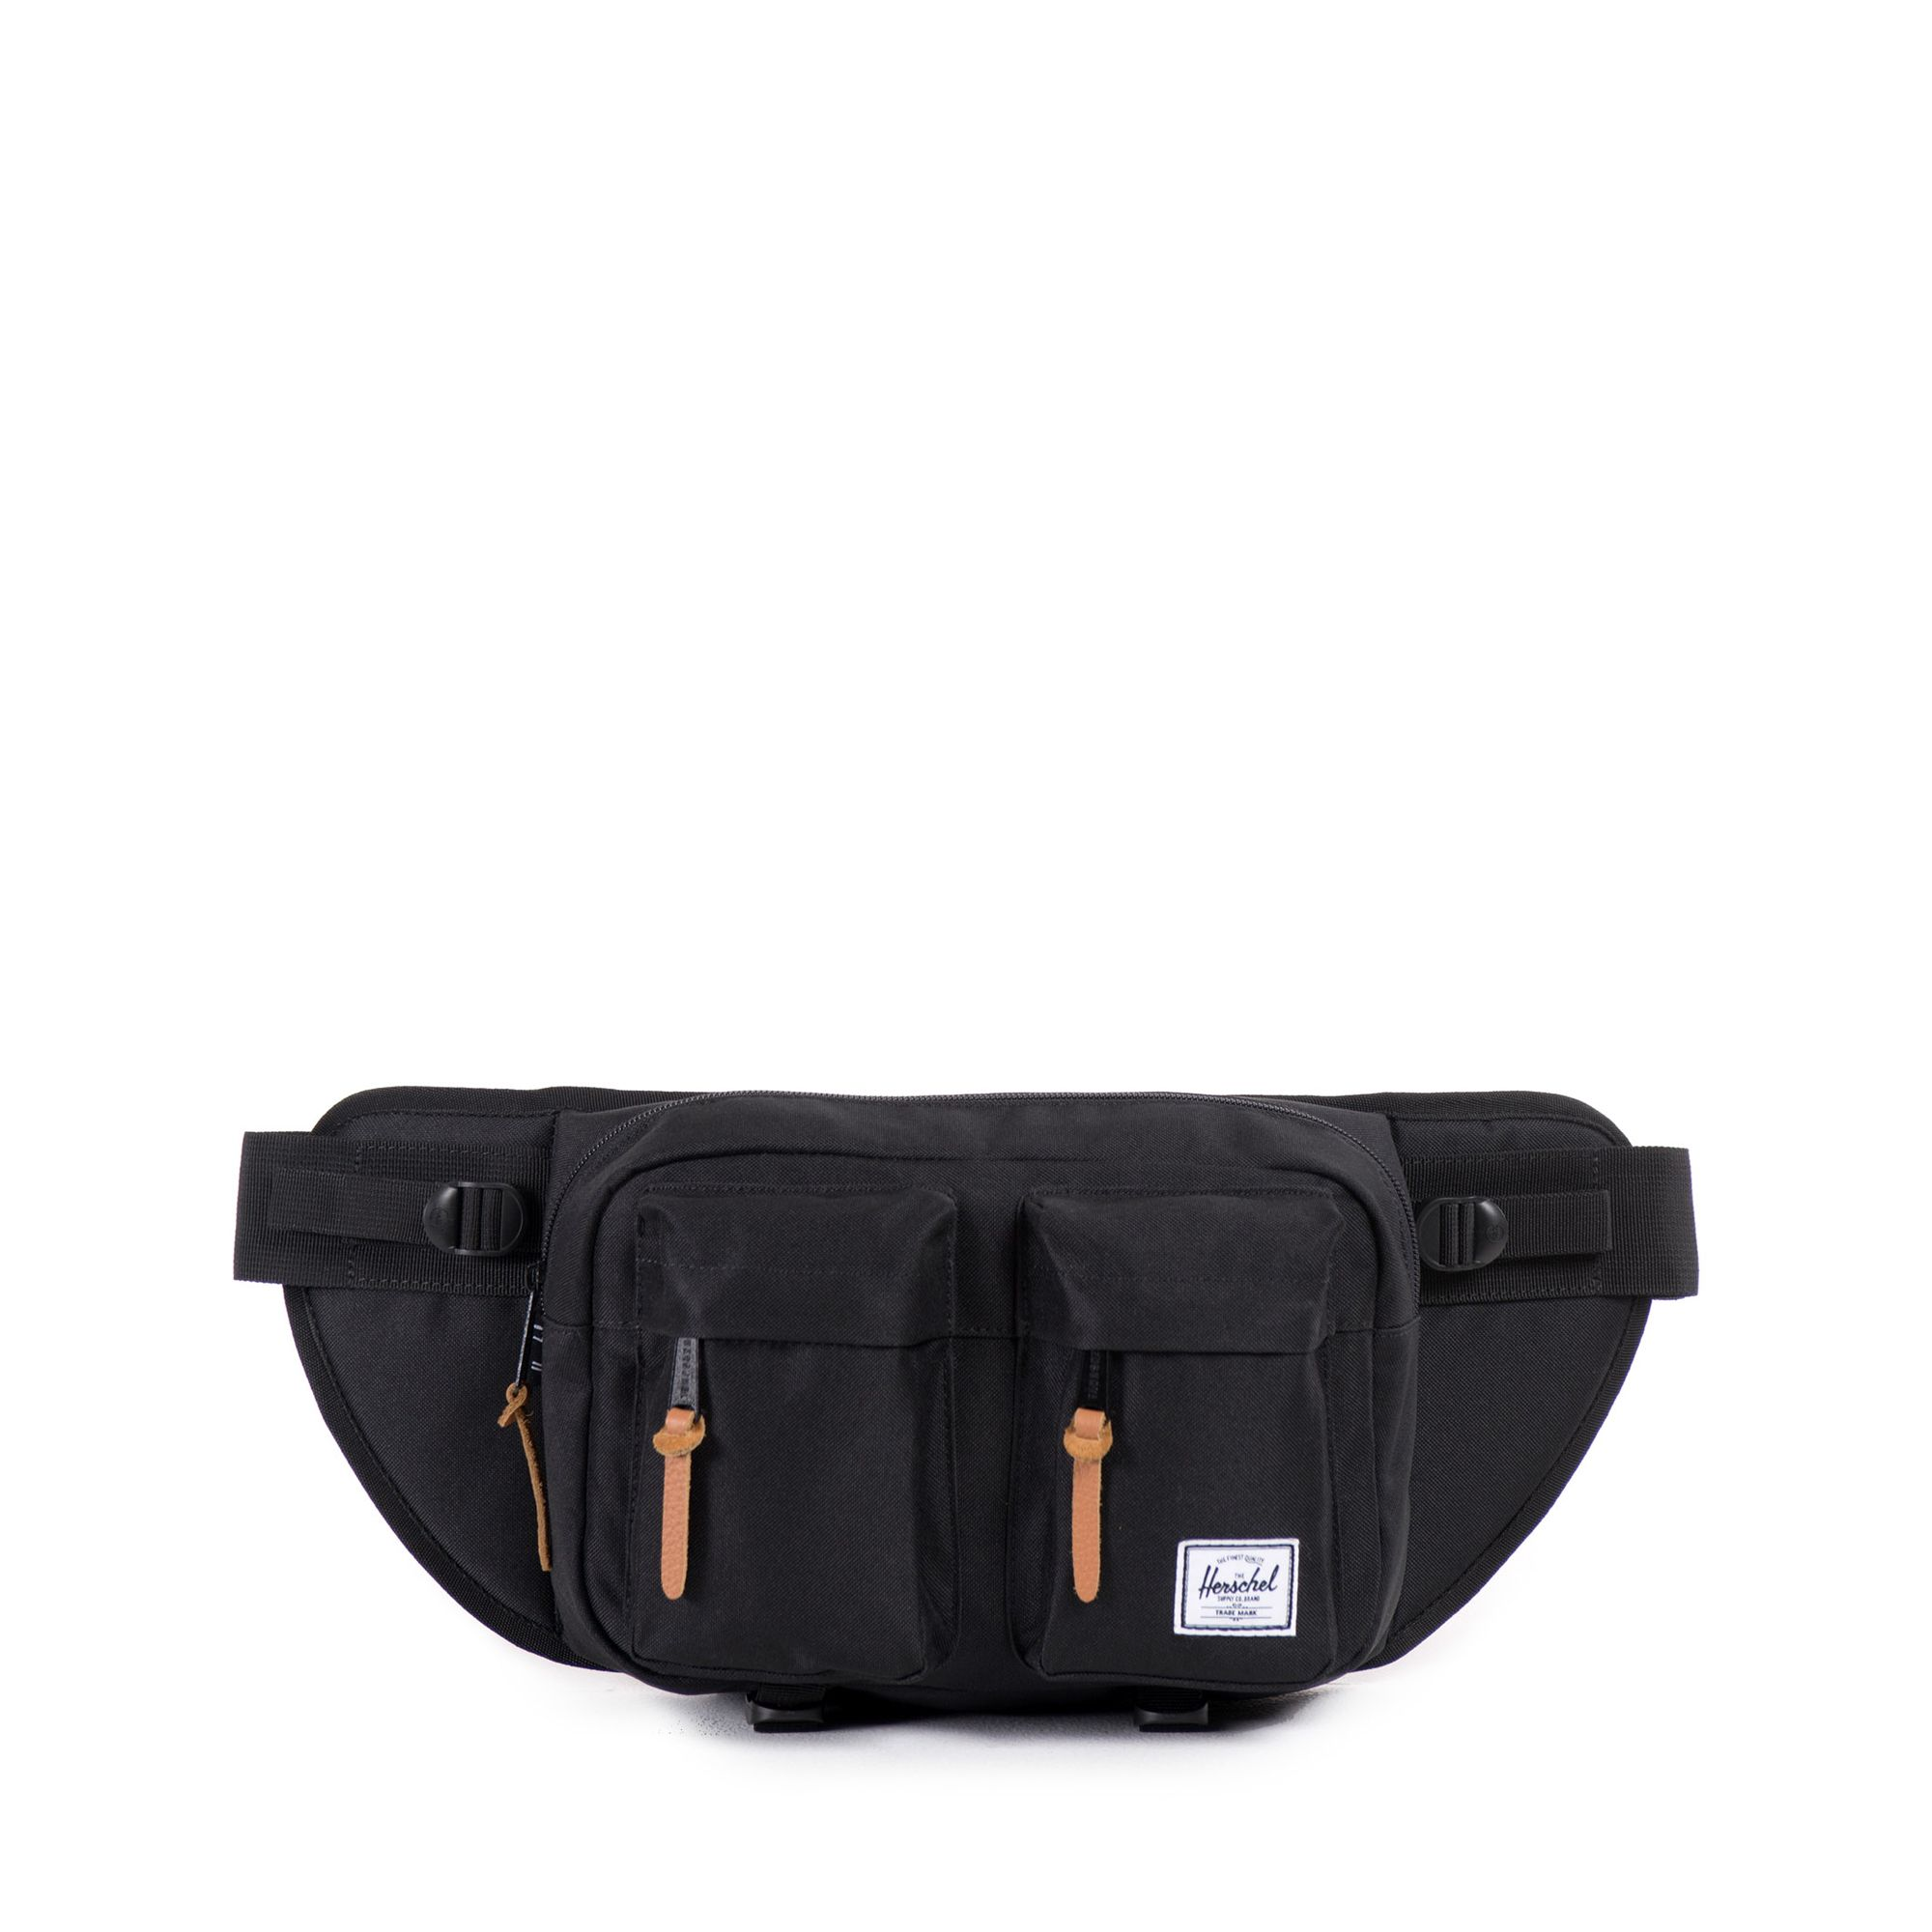 3e6212256542 Eighteen Hip Pack